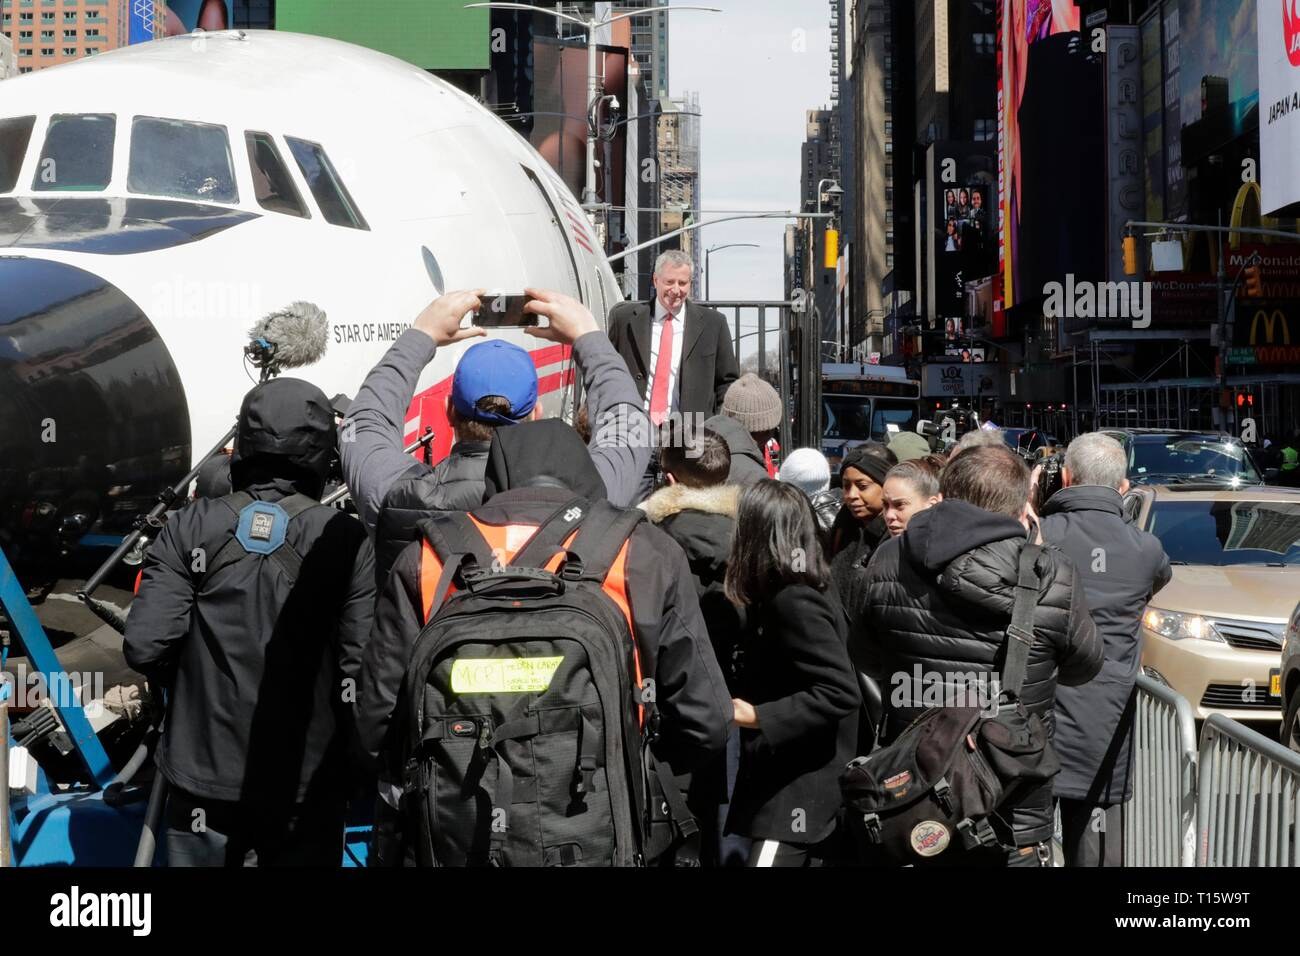 Times Square, New York, USA, March 23, 2019 - Mayor Bill de Blasio, CEO and Managing Partner of MCR Tyler Morse, and Hotel Trades Council President Peter Ward helps celebrate the TWA Hotel Project, including the restoration of the 1958 Lockheed Constellation plane Connie today in Times Square, Manhattan Photo: Luiz Rampelotto/EuropaNewswire | usage worldwide - Stock Image